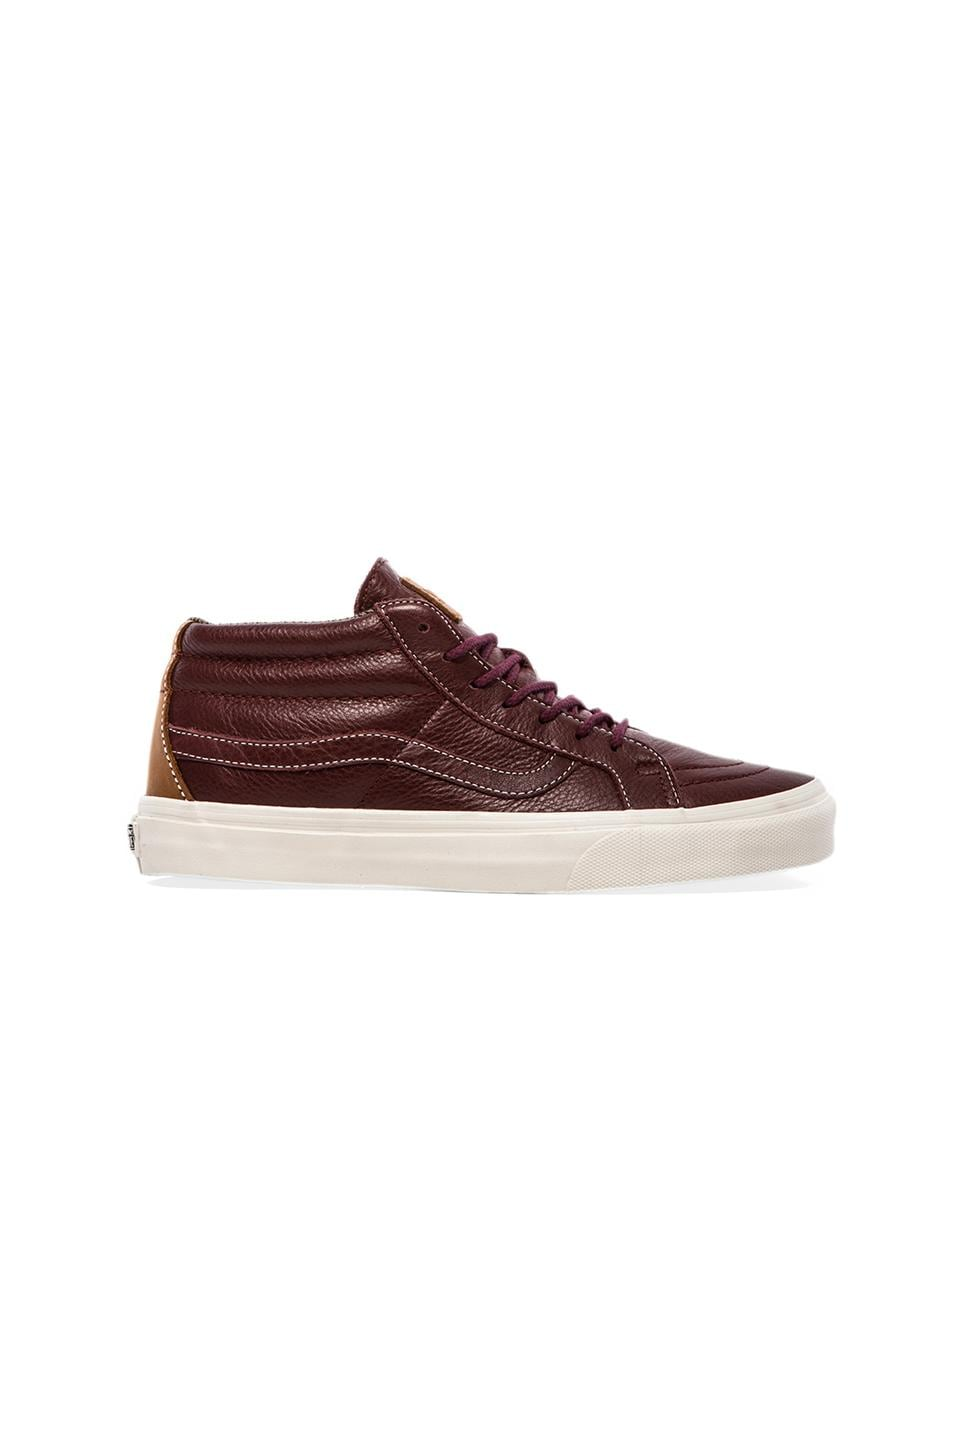 Vans California Sk8 Mid Leathere in Port Royal